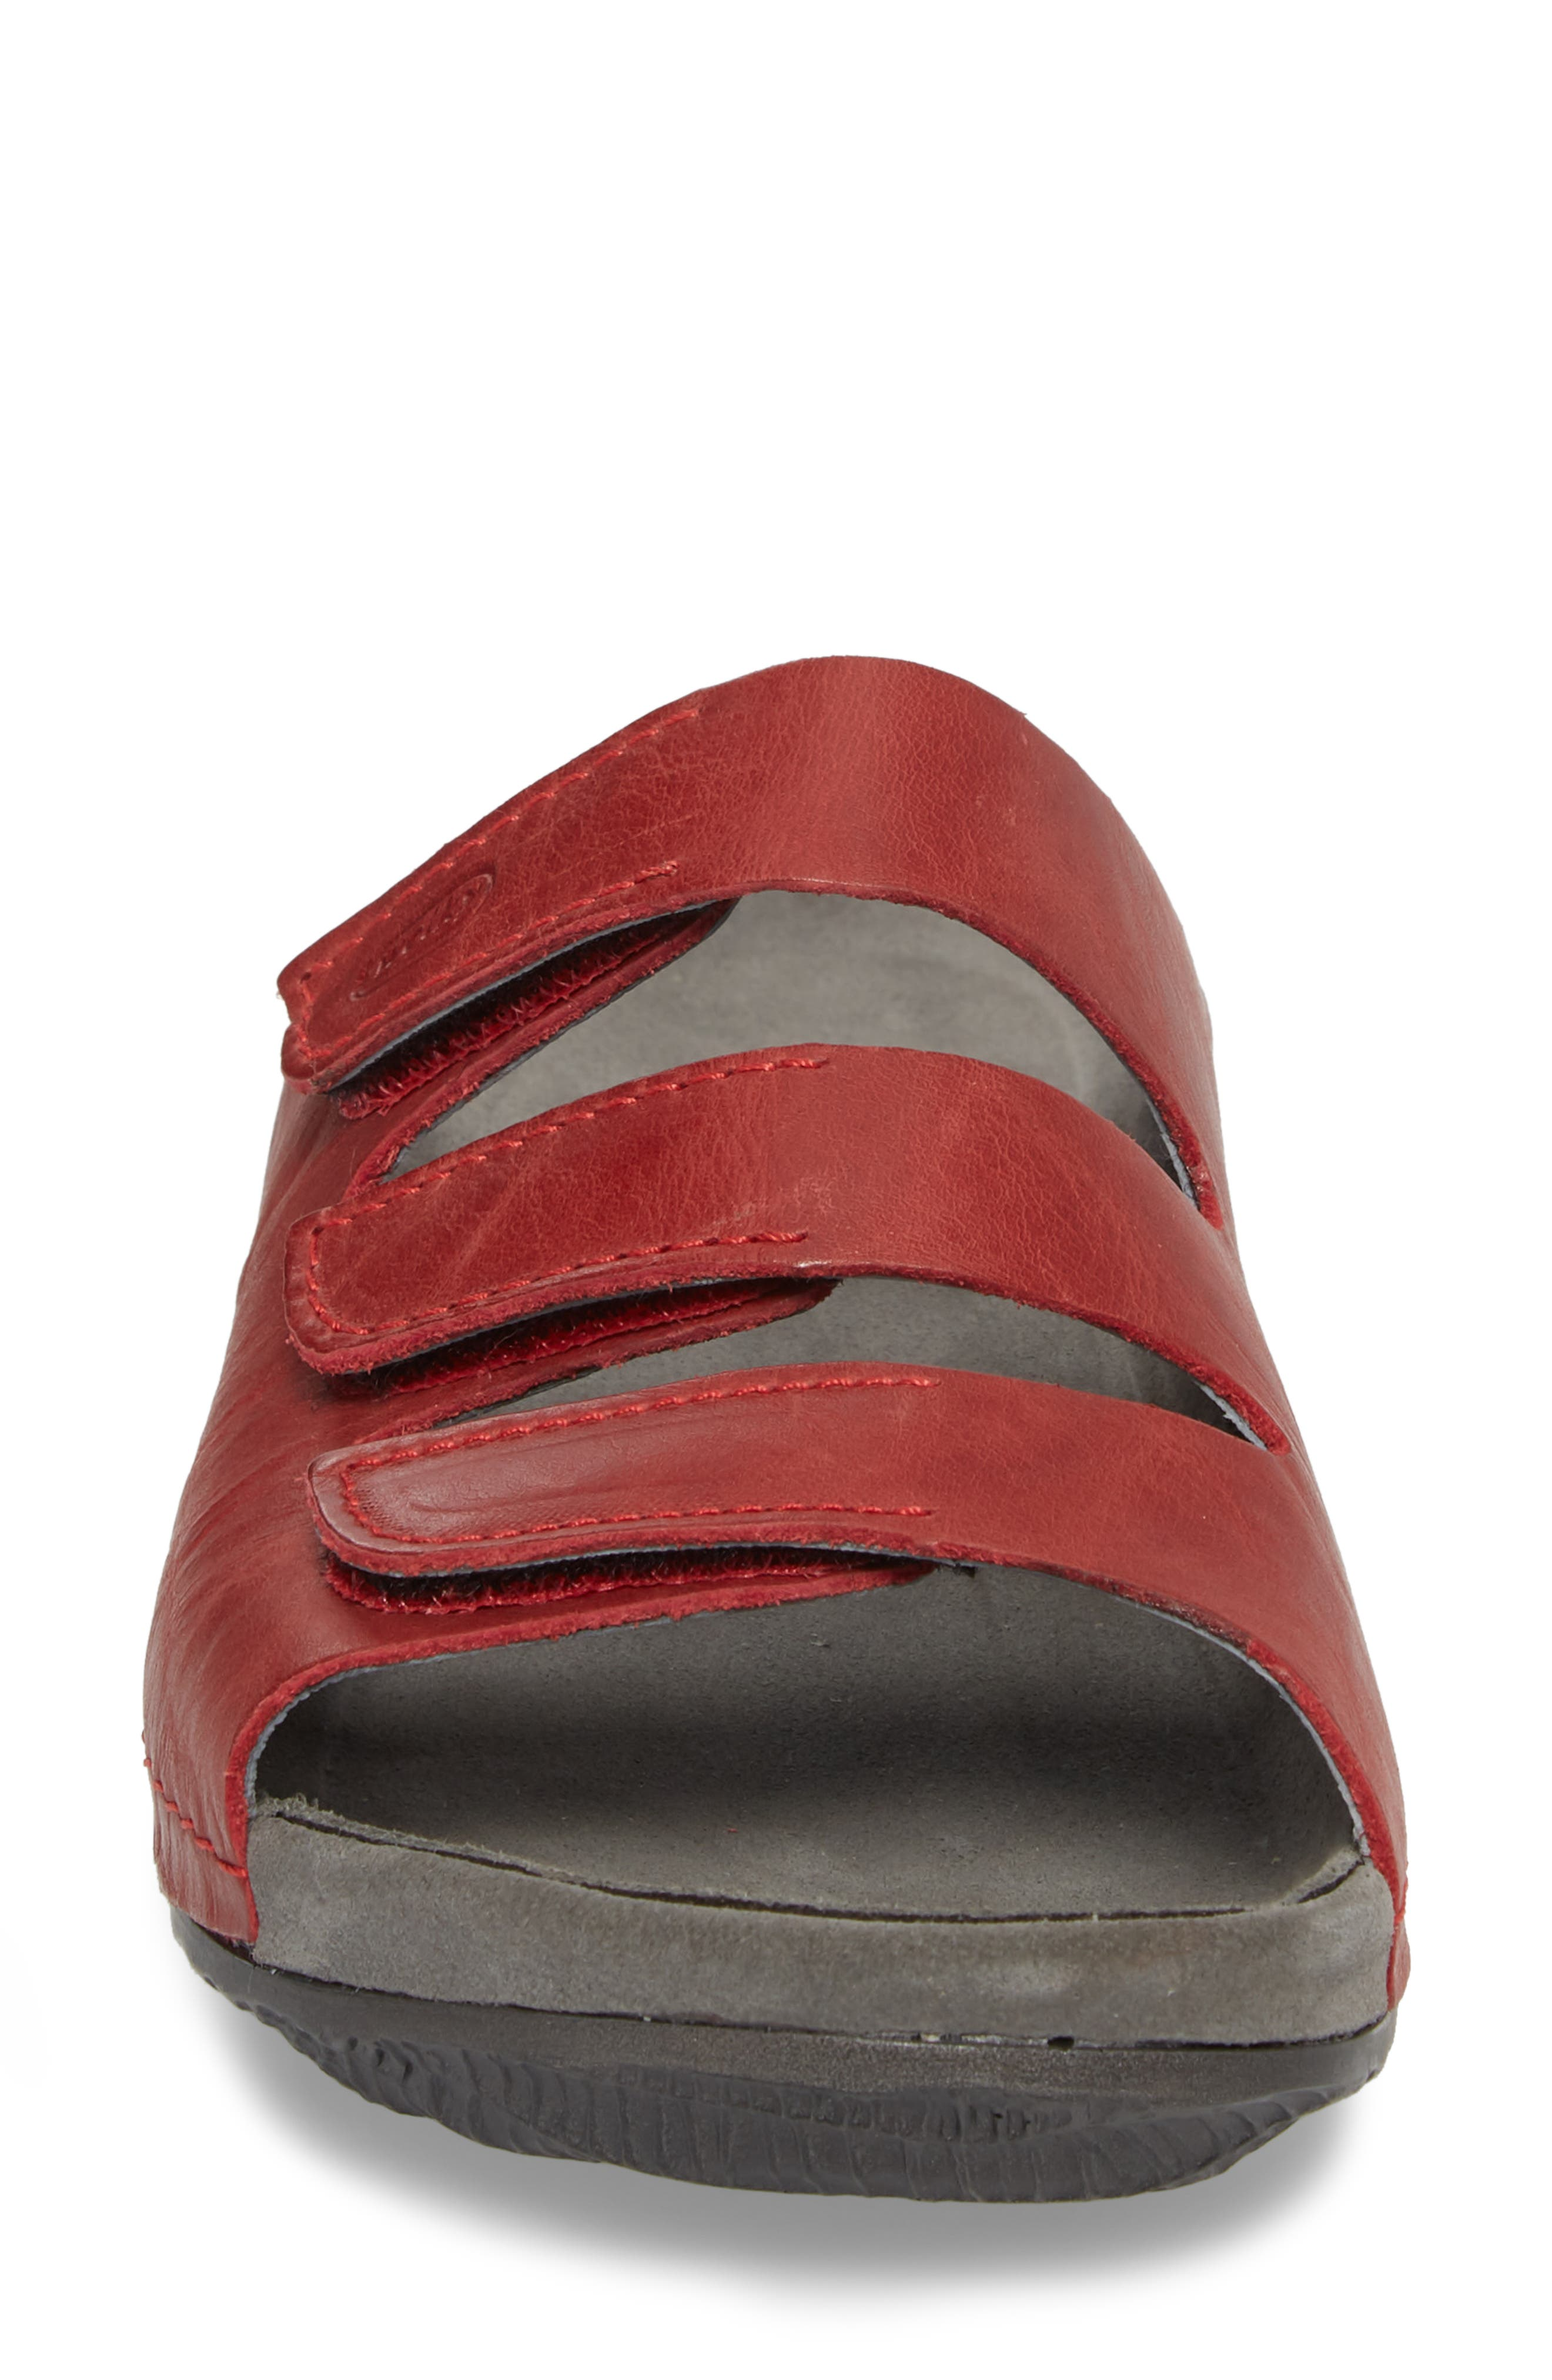 Nomad Slide Sandal,                             Alternate thumbnail 4, color,                             Red Leather